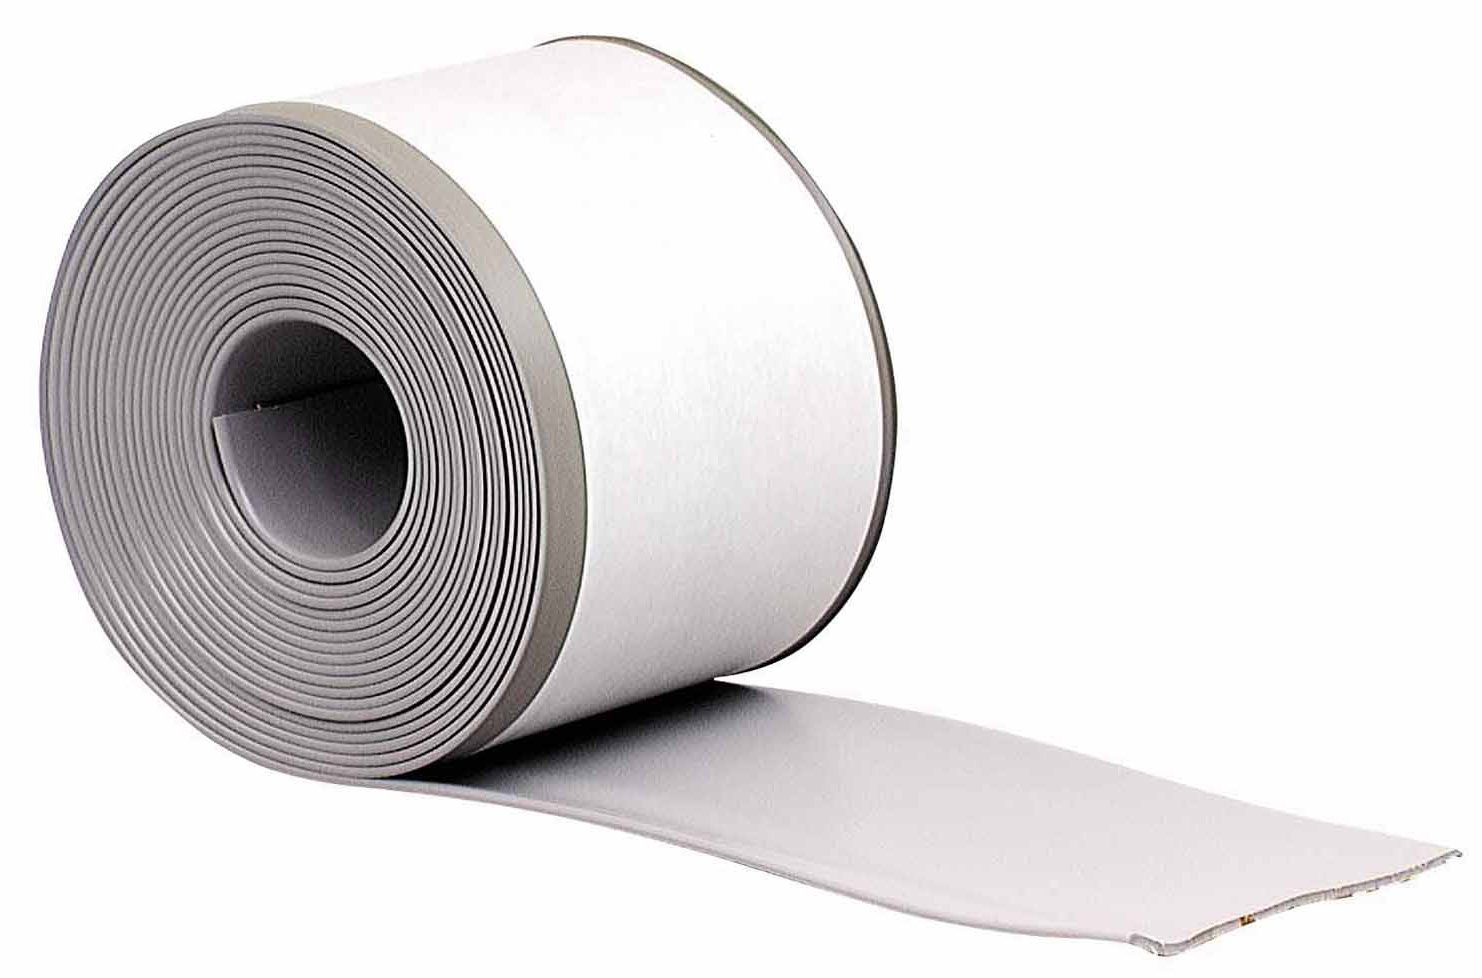 M-D Building Products 93245 4-Inch by 20-Feet Adhesive Back Vinyl Wall Base, Silver Gray